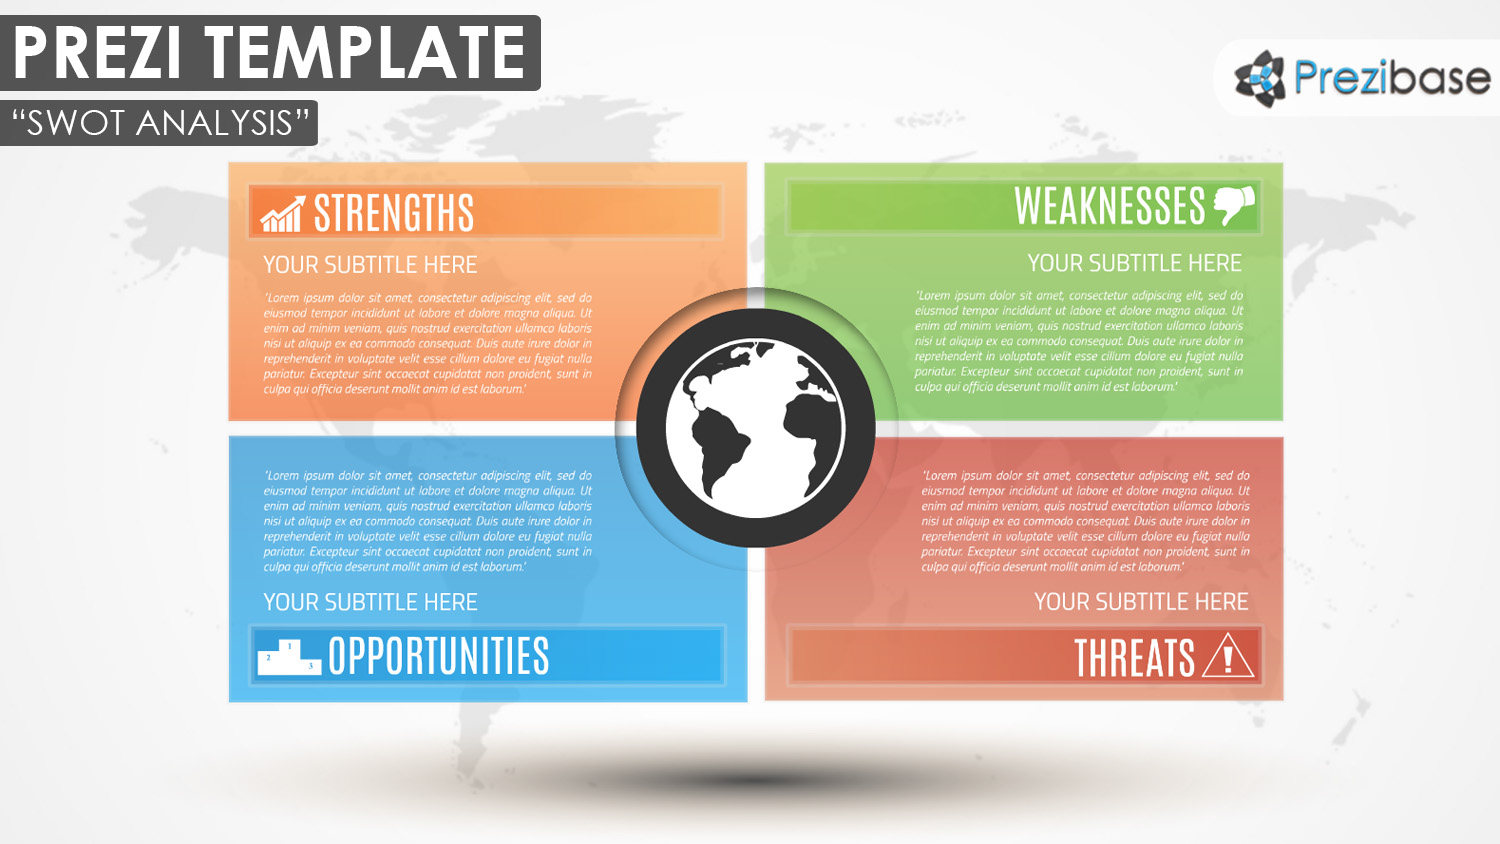 Business prezi templates prezibase swot analysis prezi friedricerecipe